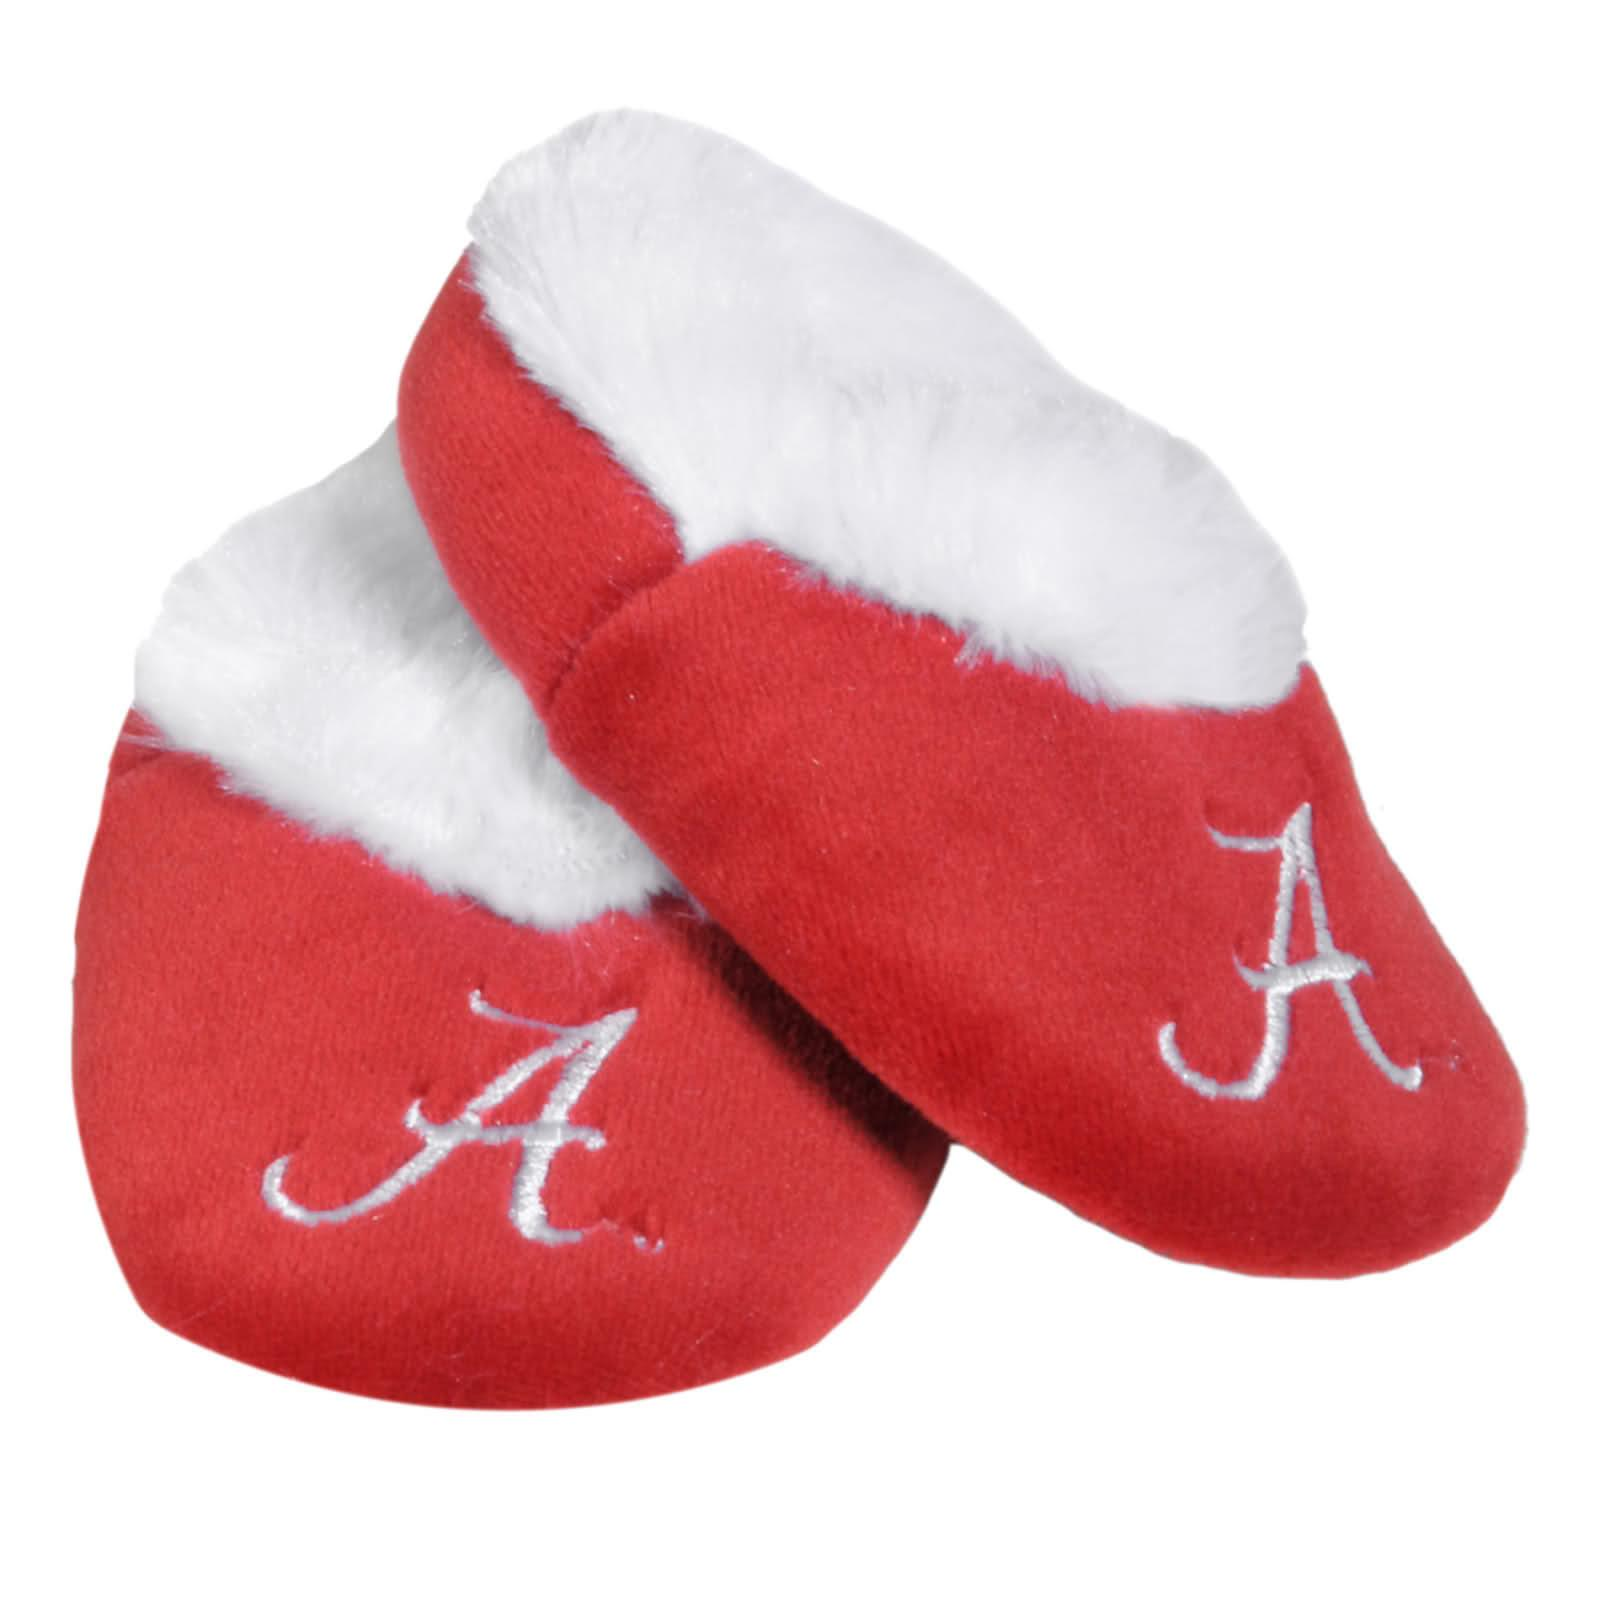 Alabama Crimson Tide Baby Bootie Slippers